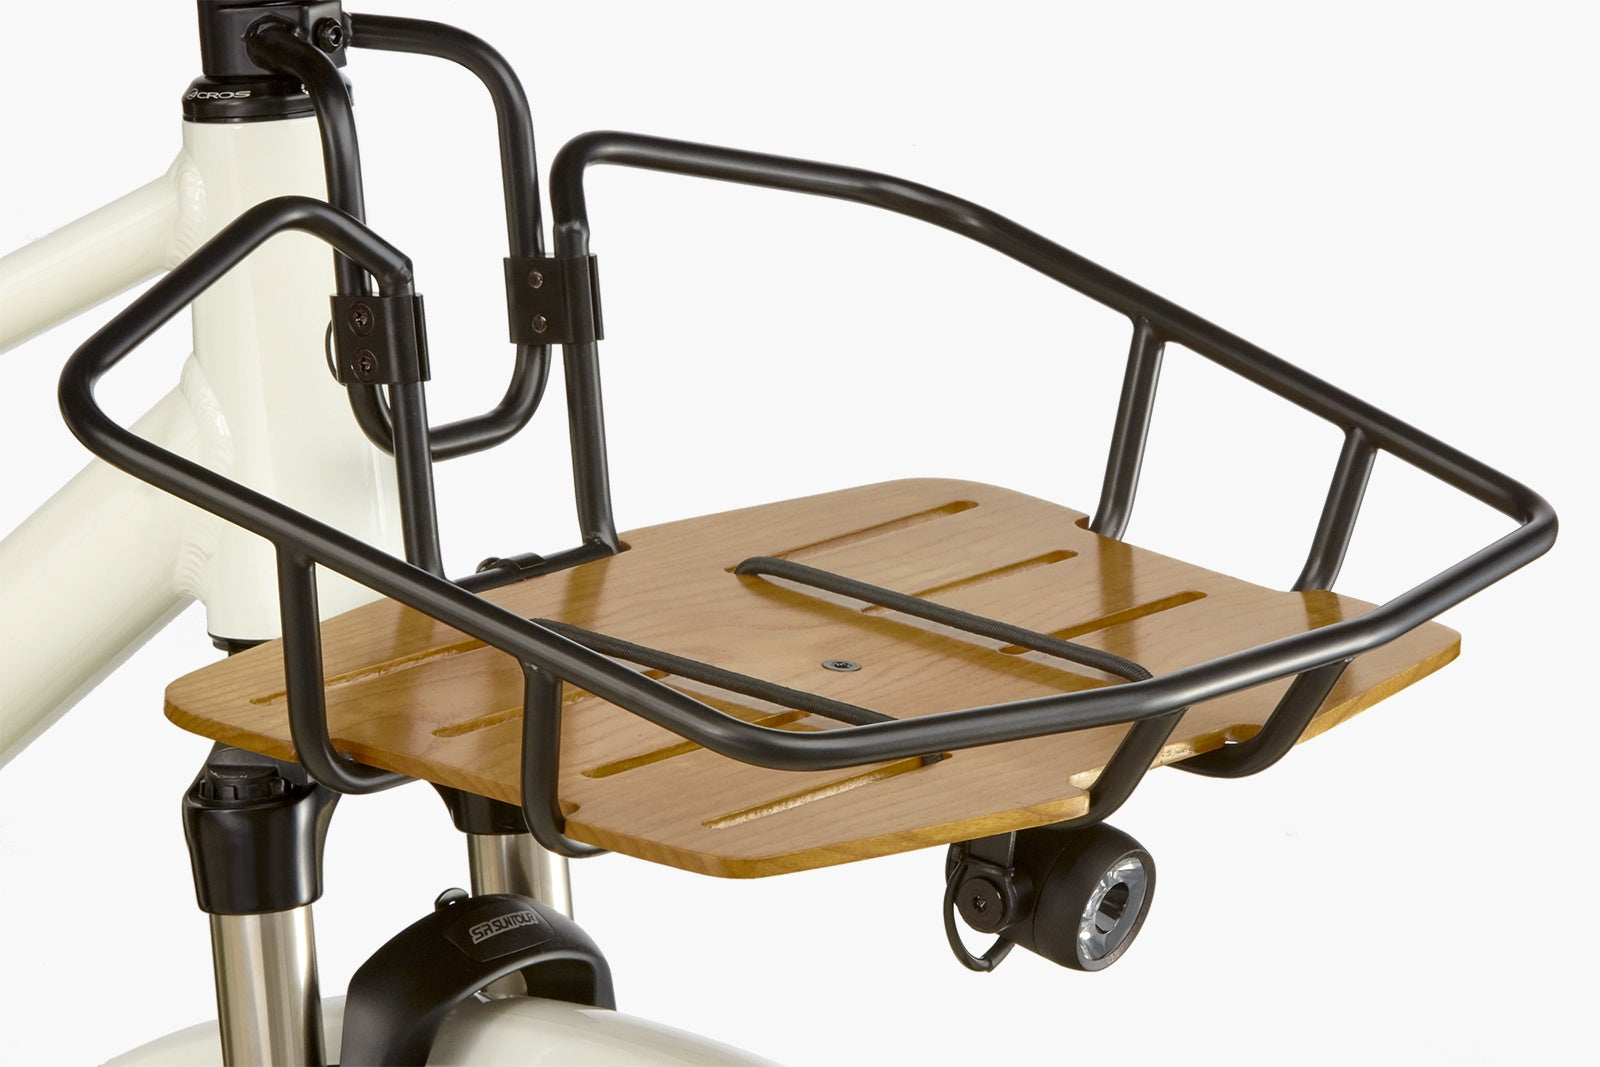 Riese & Muller Roadster Front Carrier